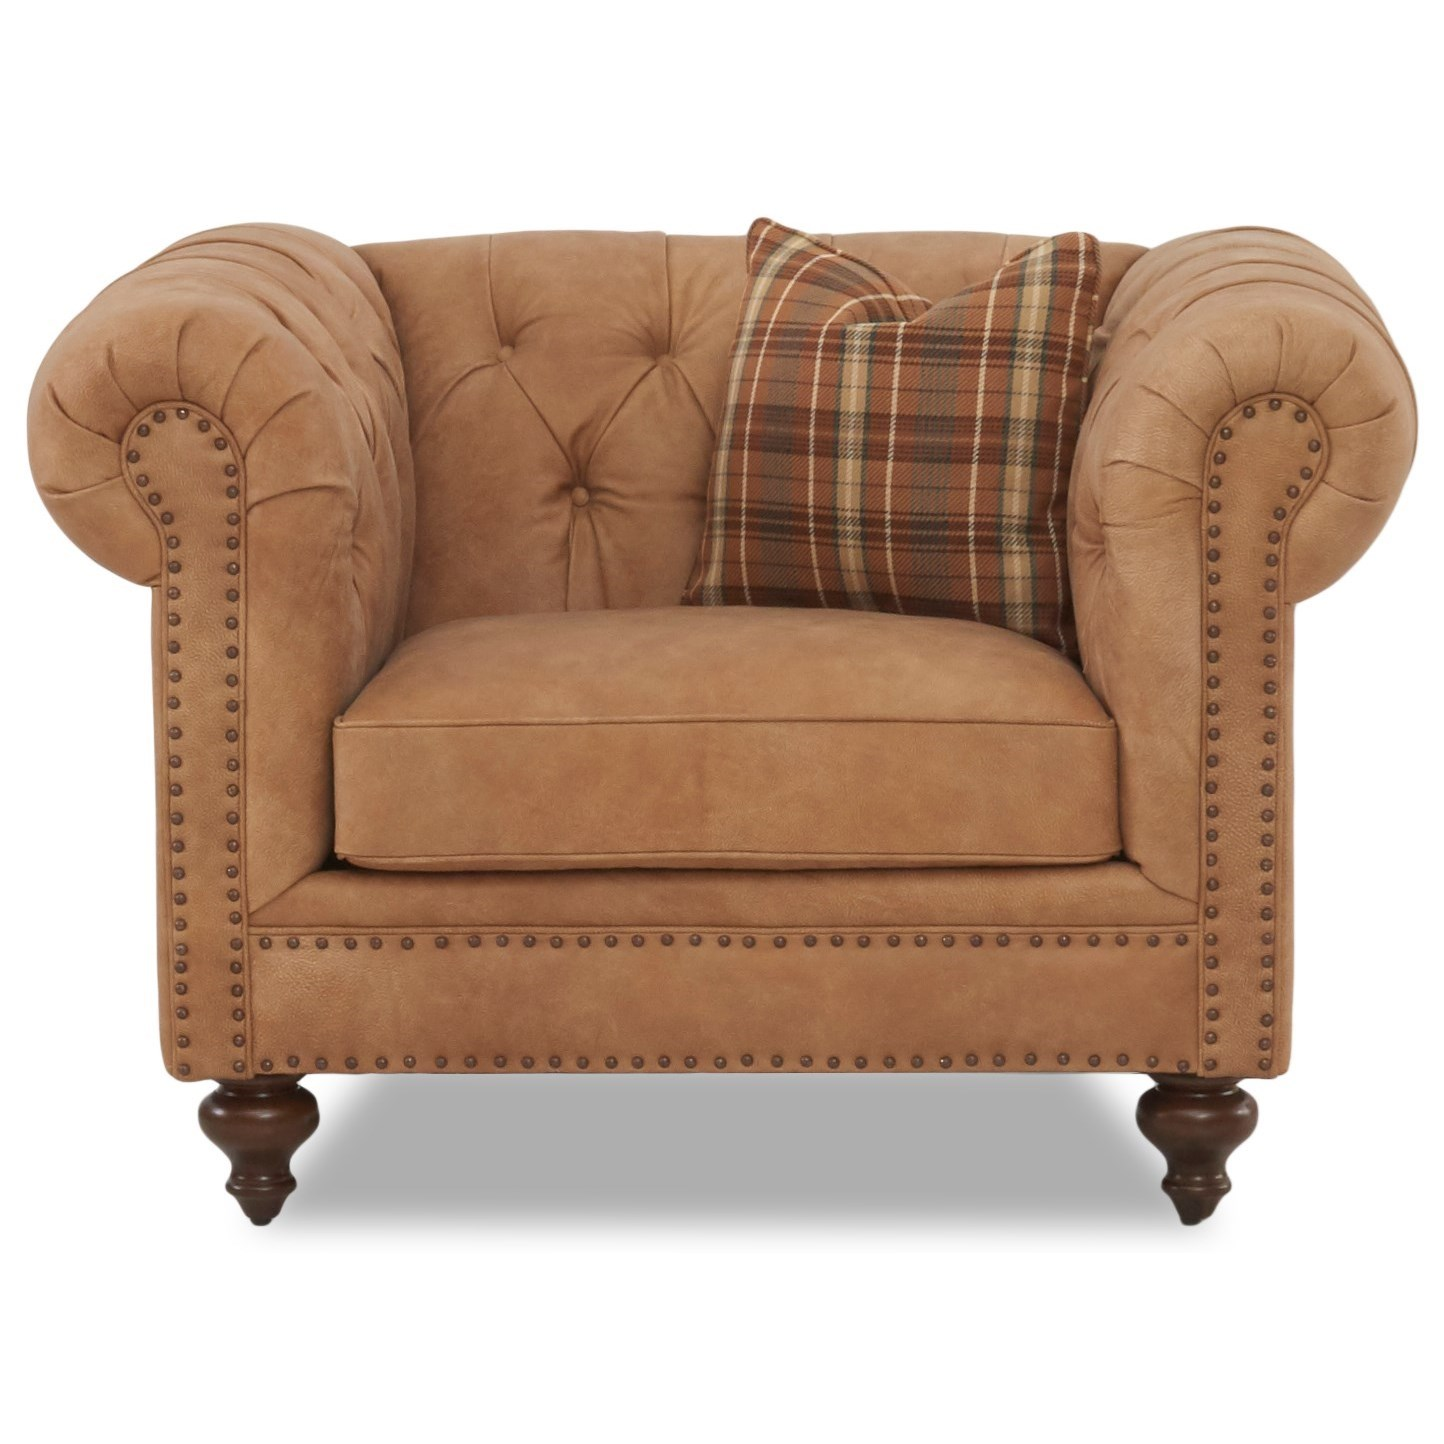 Tufted Chair And A Half Klaussner Charlotte Traditional Tufted Chair And 1 2 With